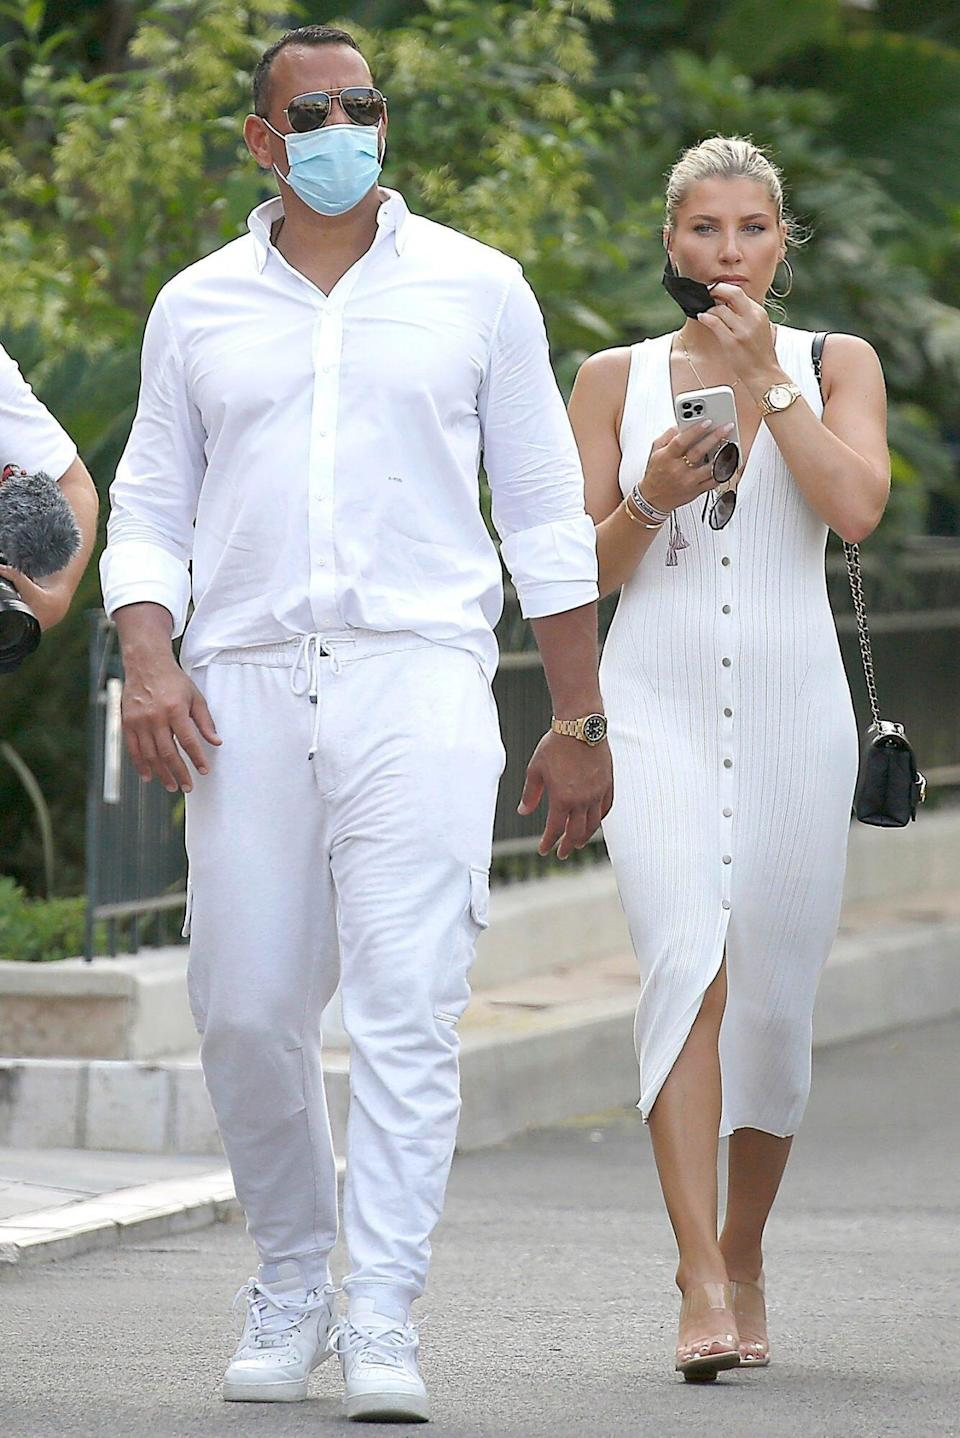 Alex Rodriguez is getting really close to Melanie Colins